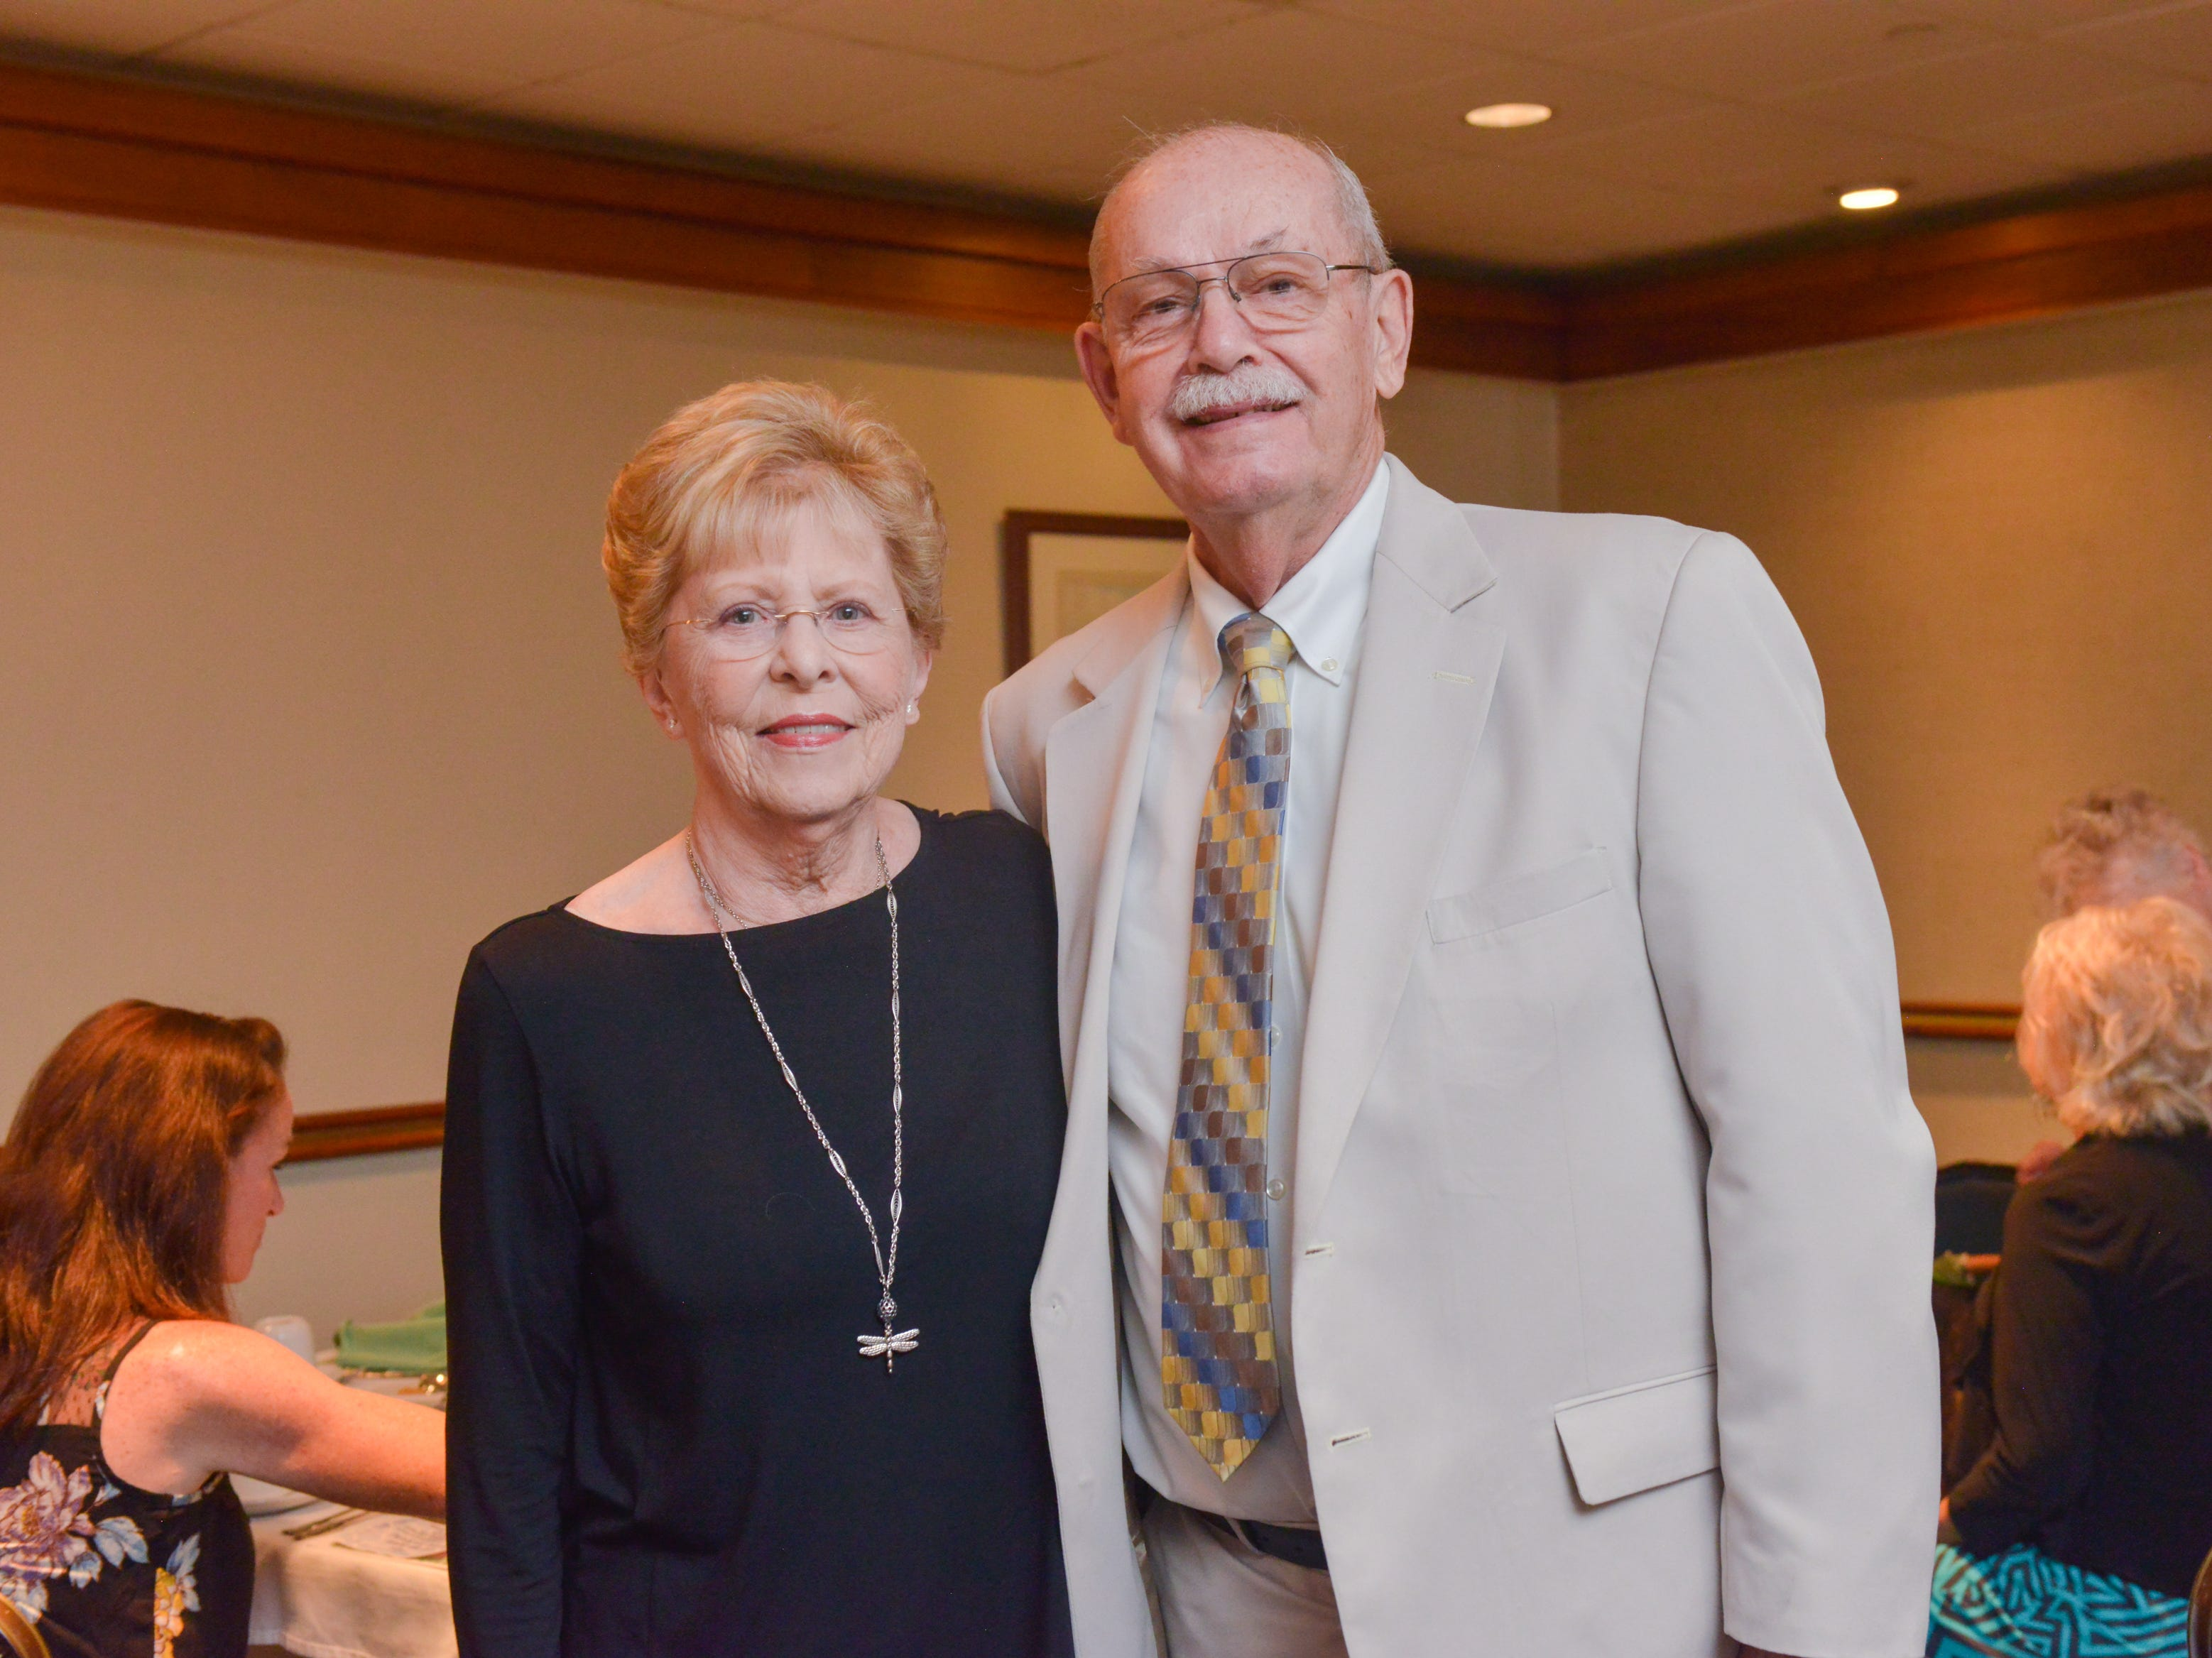 Pam and Dr. Barry Hensel at Friends of Sally's House luncheon at the Eau Gallie Yacht Club.